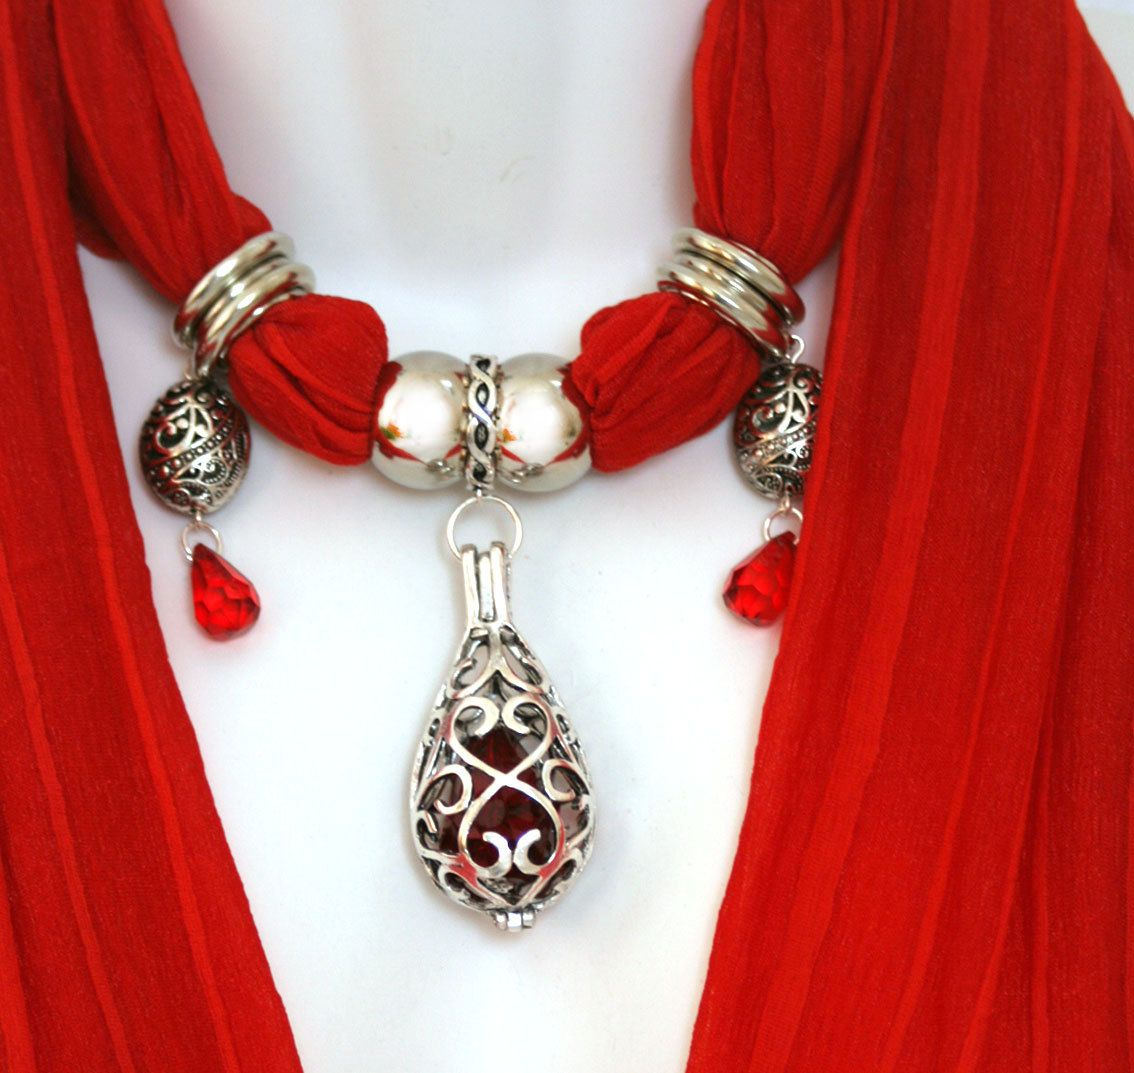 Its red and its a scarf and its red and its a scarf and i want red scarf with pendant jewelry aloadofball Choice Image